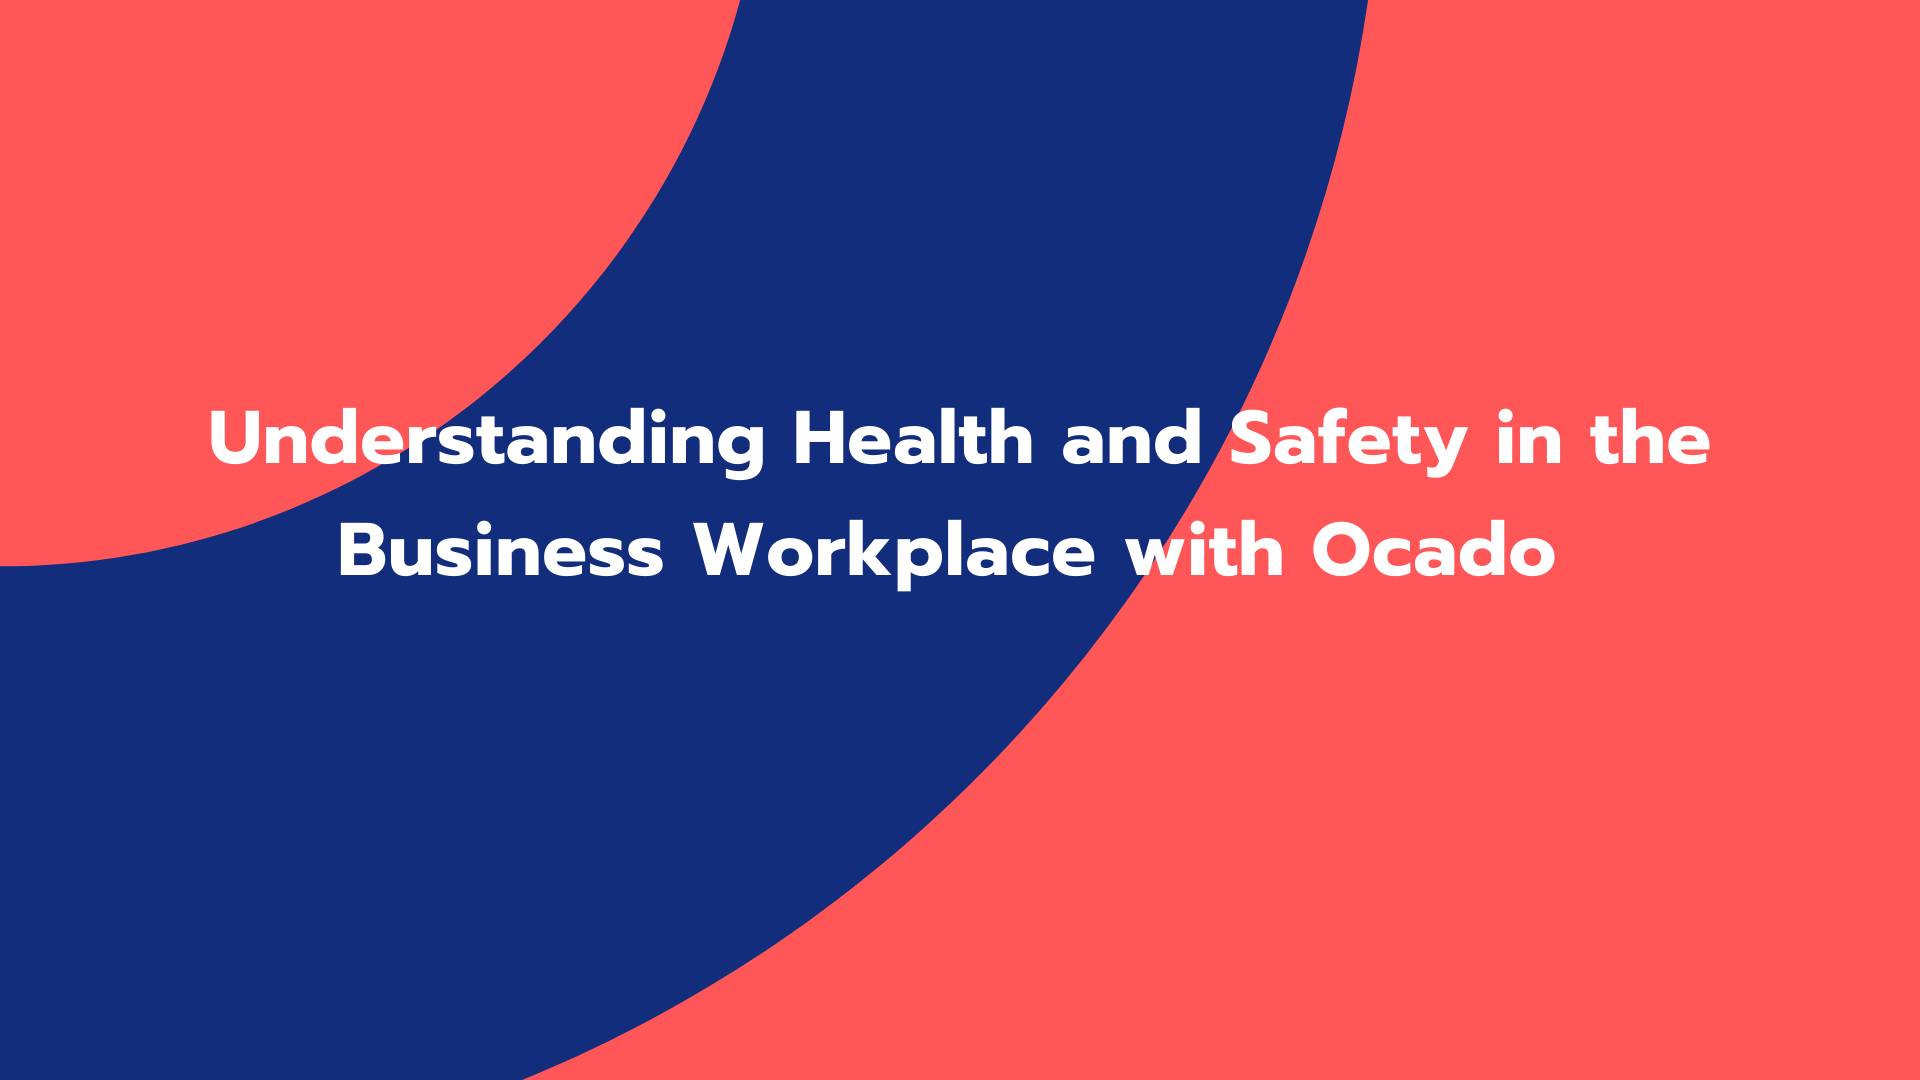 Understanding Health and Safety in the Business Workplace with Ocado